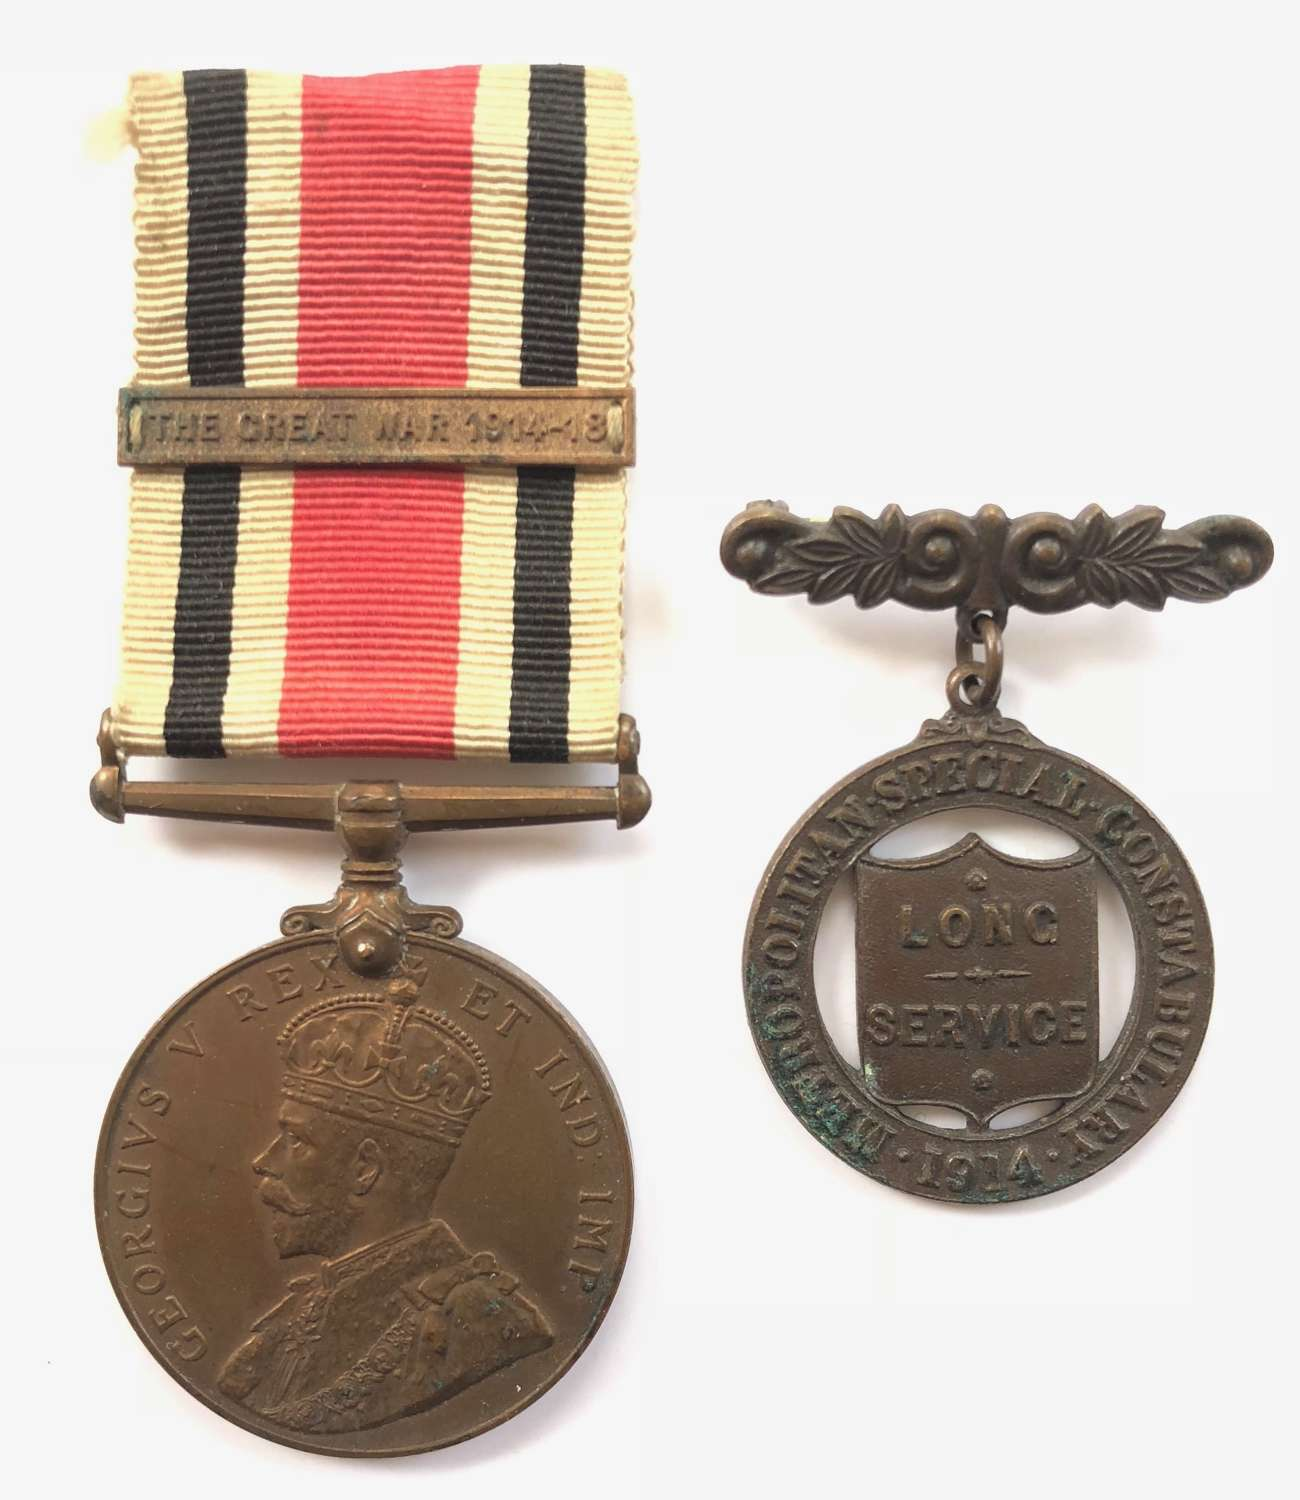 Special Constabulary Medal London Metropolitan Police